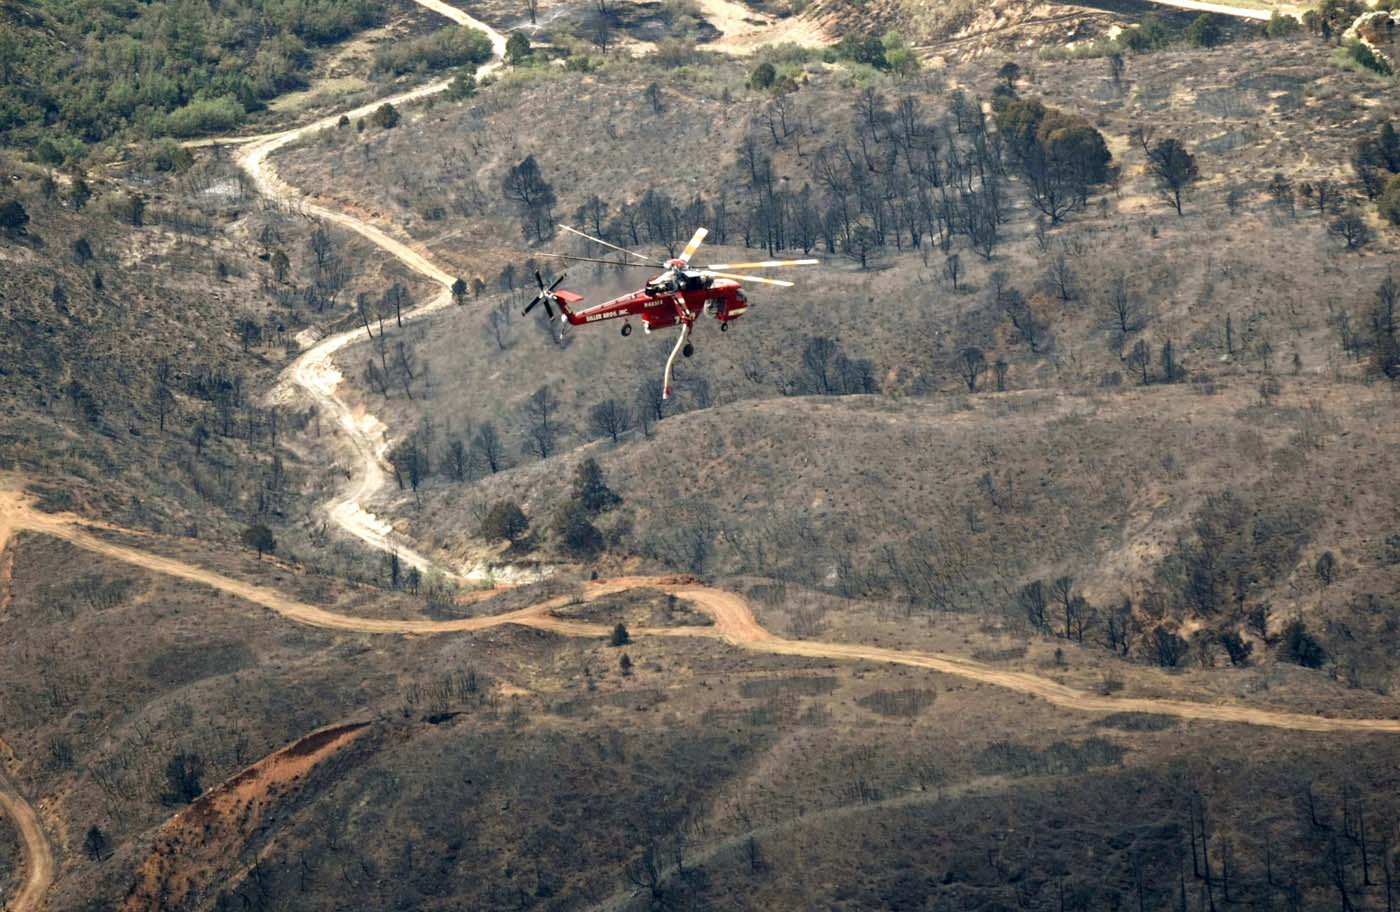 JUNE 28: A helicopter flies over the aftermath of the Waldo Canyon Fire in Colorado Springs, Colorado June 28, 2012. Cooler temperatures and lighter winds helped firefighters on Thursday in the battle against the fire, which has destroyed hundreds of homes and forced more than 35,000 people to flee. (Rick Wilking/Reuters)